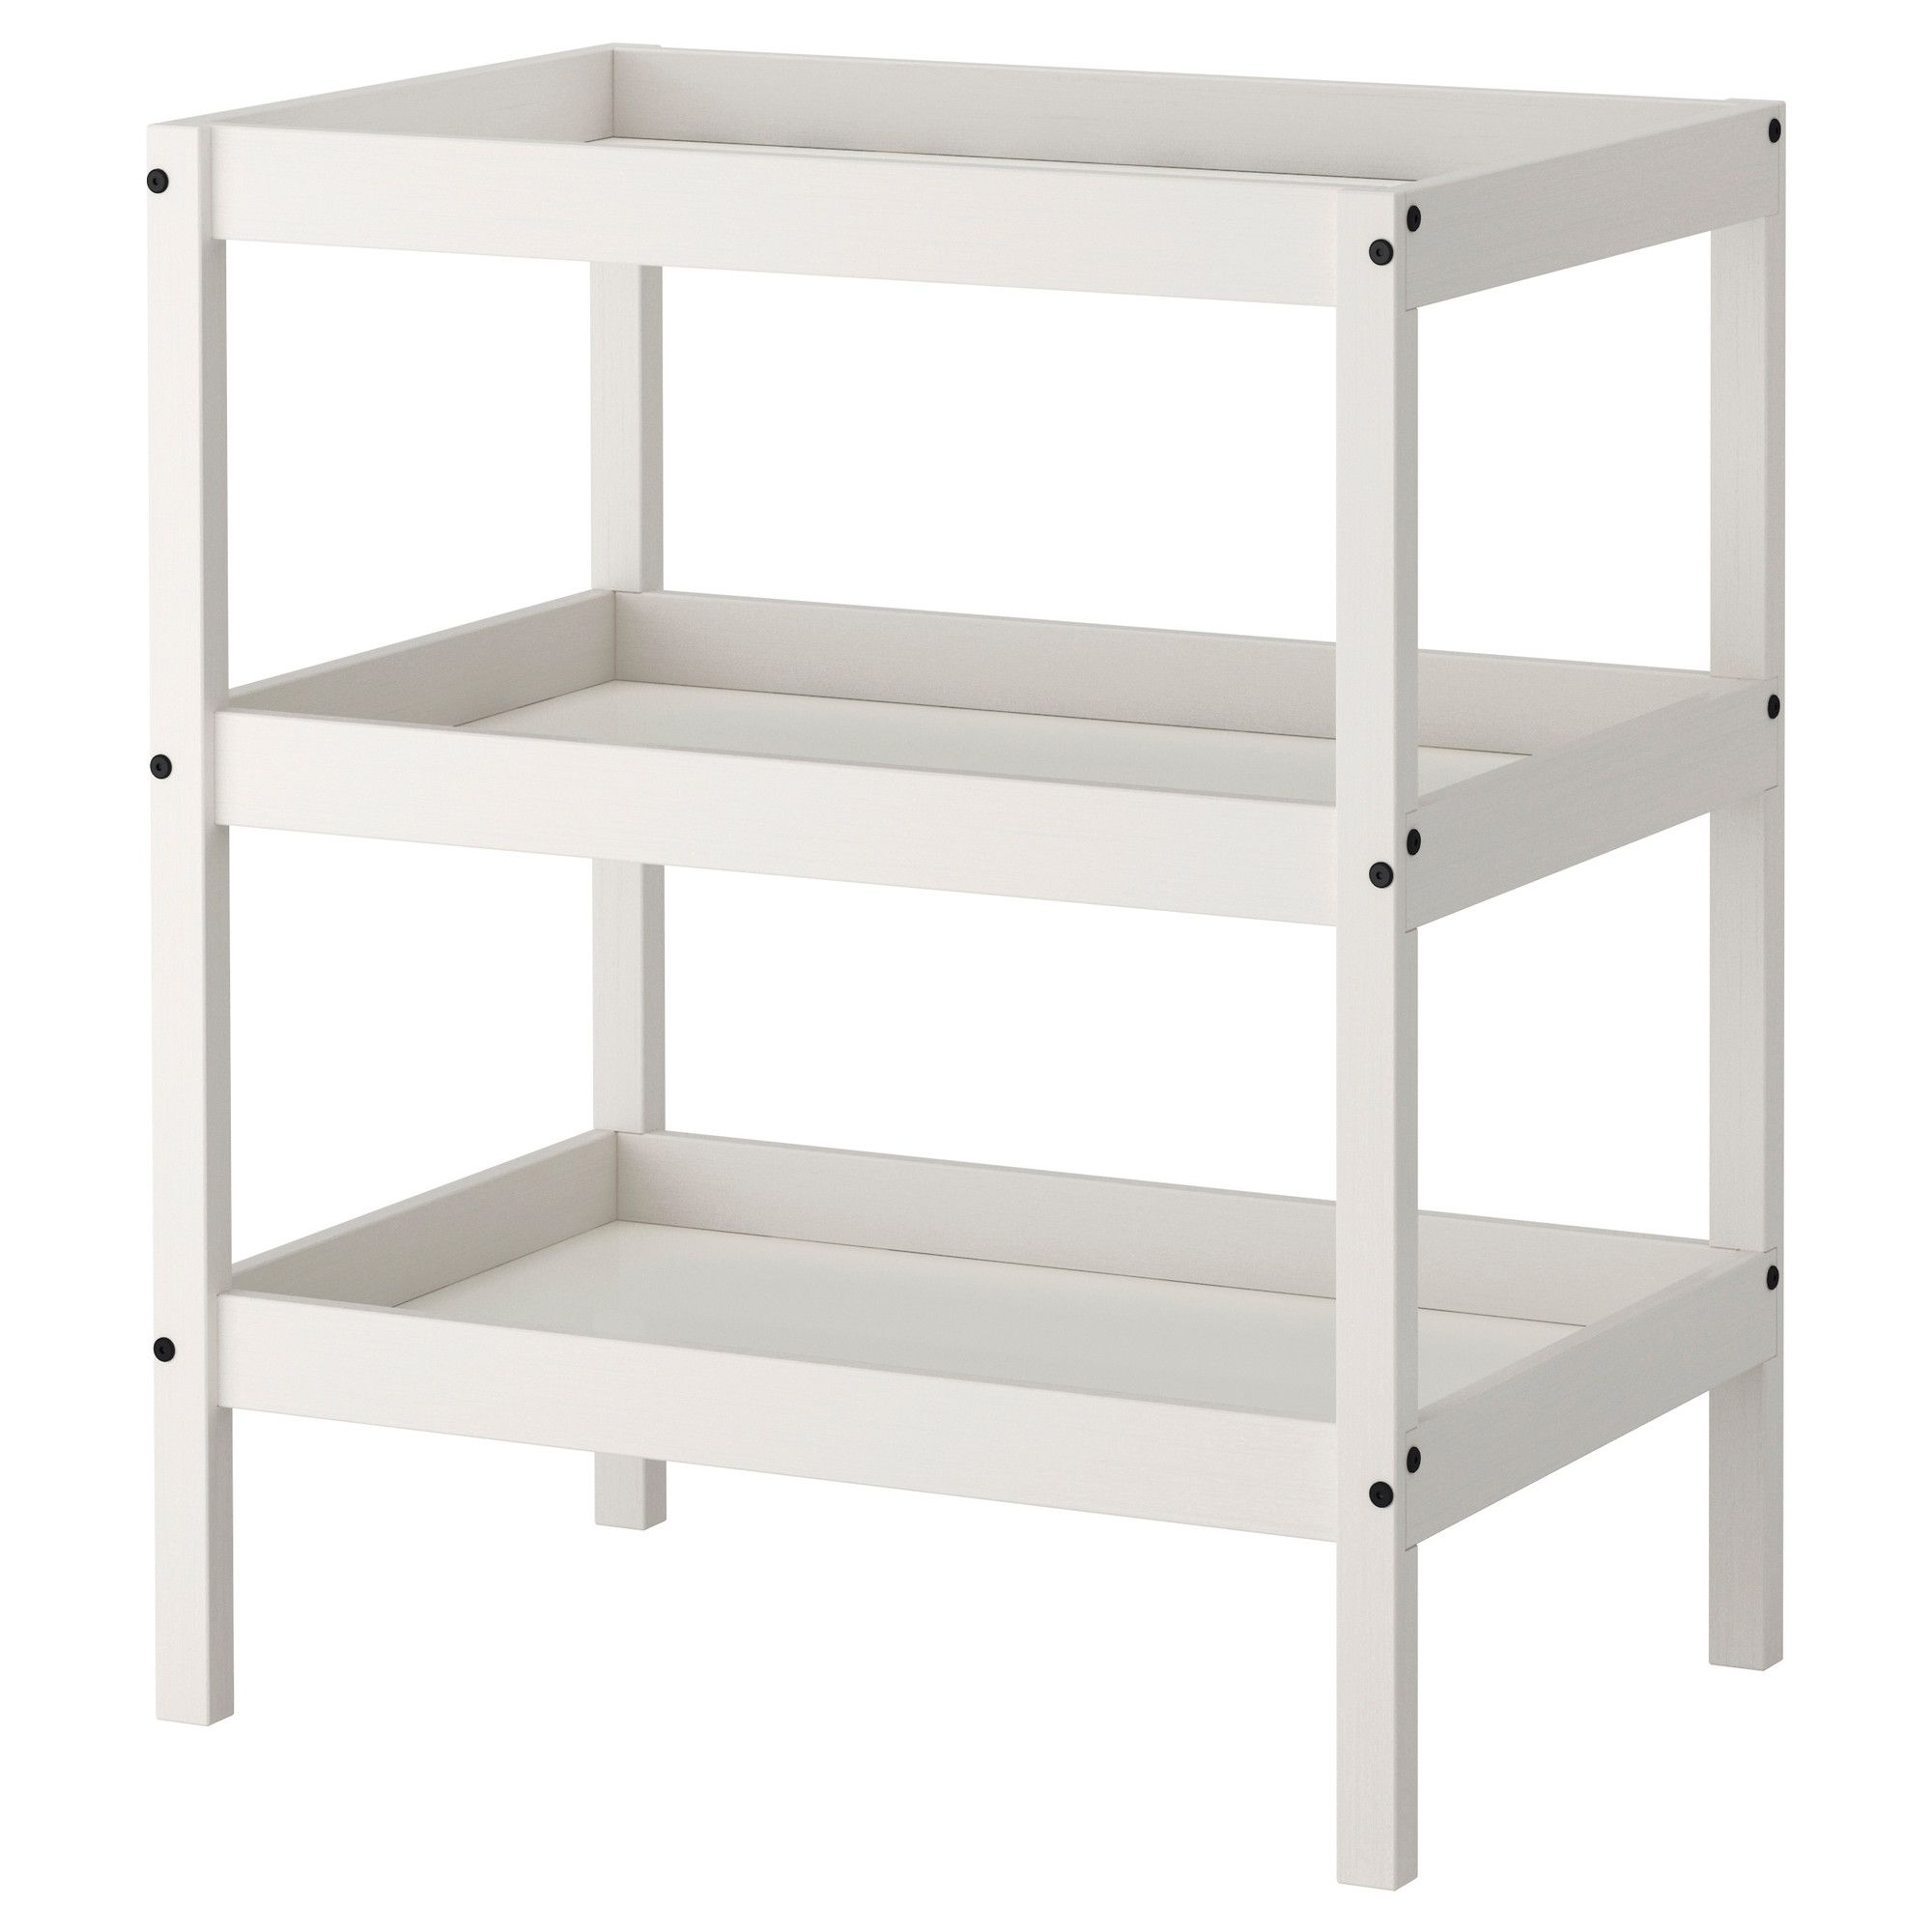 Gallery One SUNDVIK Changing table IKEA Comfortable height for changing the baby